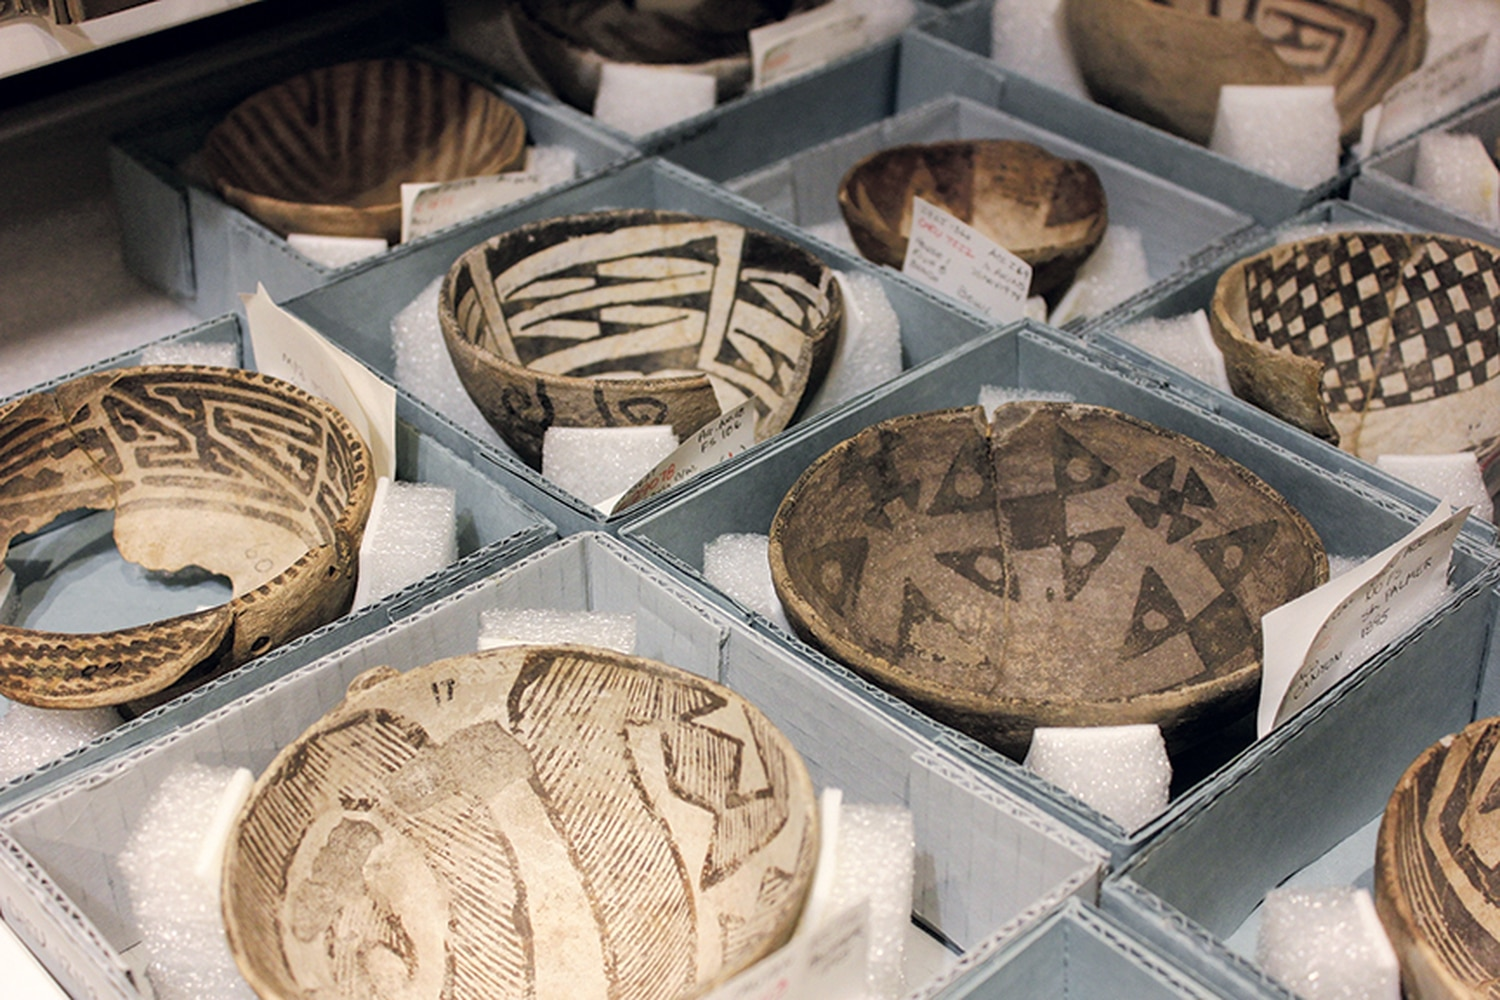 Bowls recovered from Chaco Canyon's communities show a wide range of decorative designs in the National Park Service collection, stored in Albuquerque